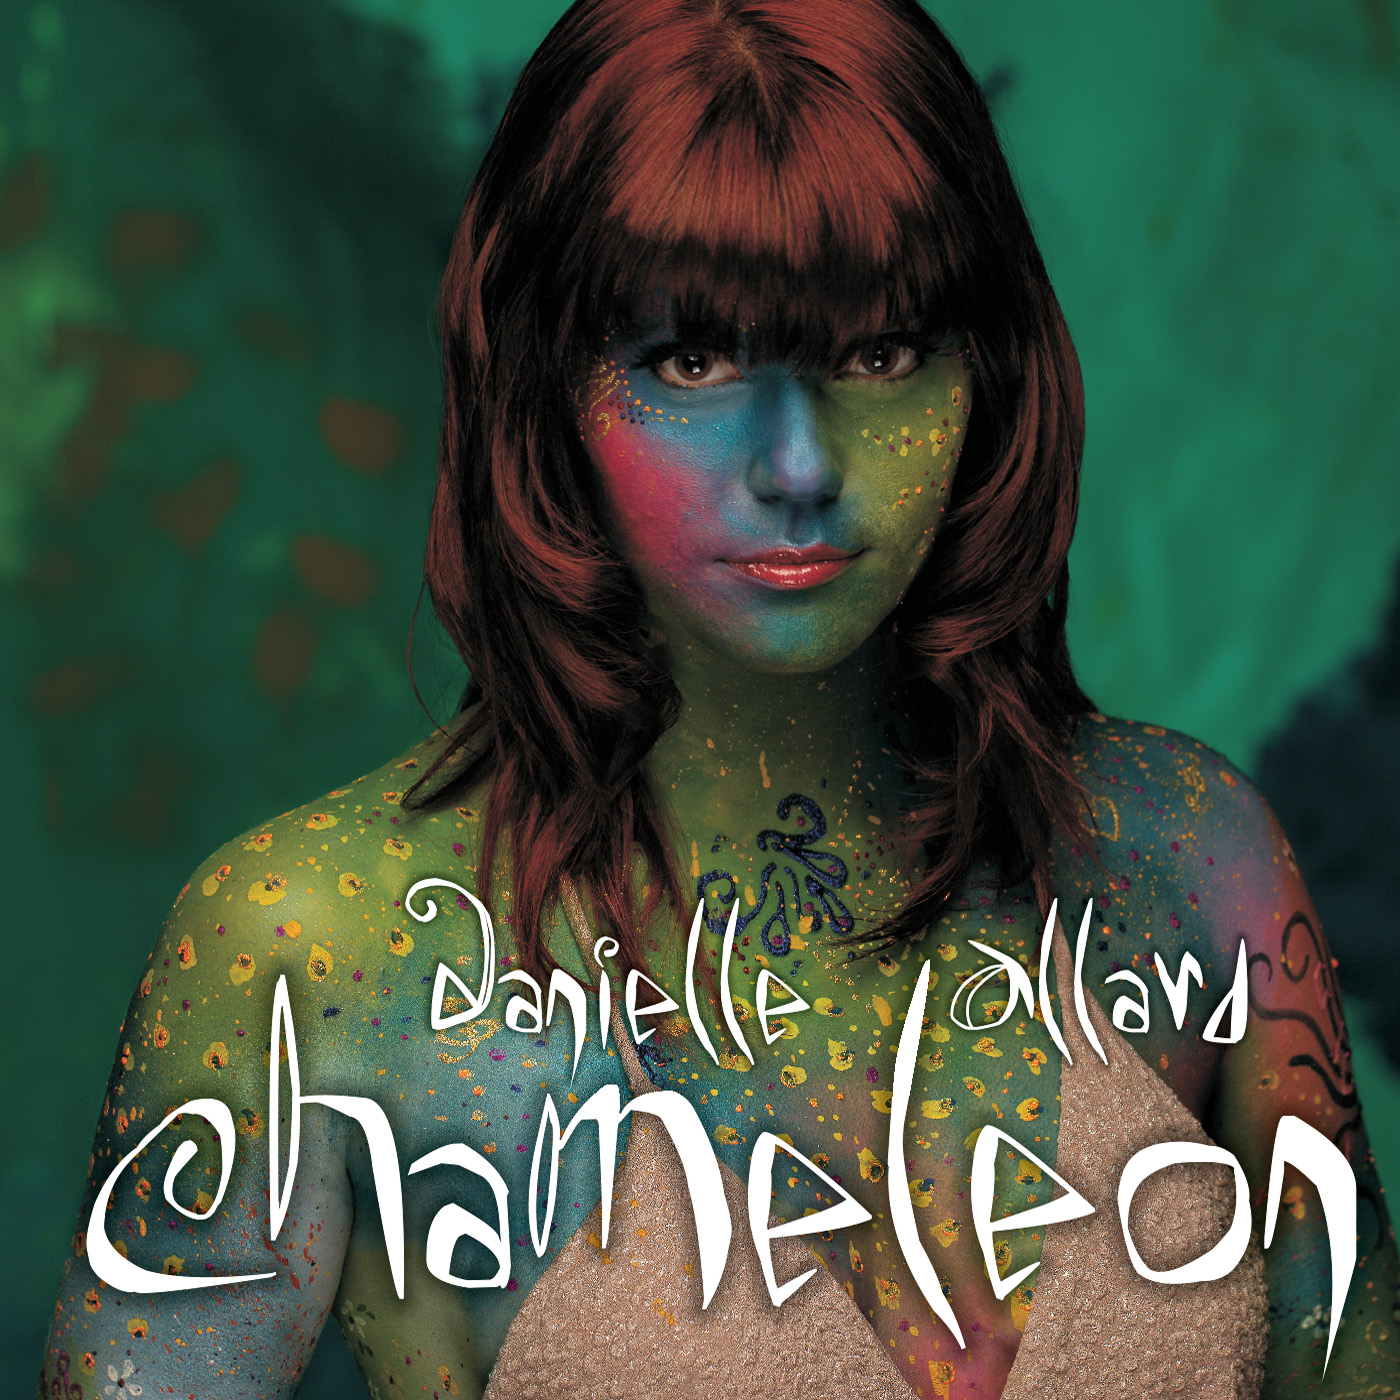 Chameleon Album Cover